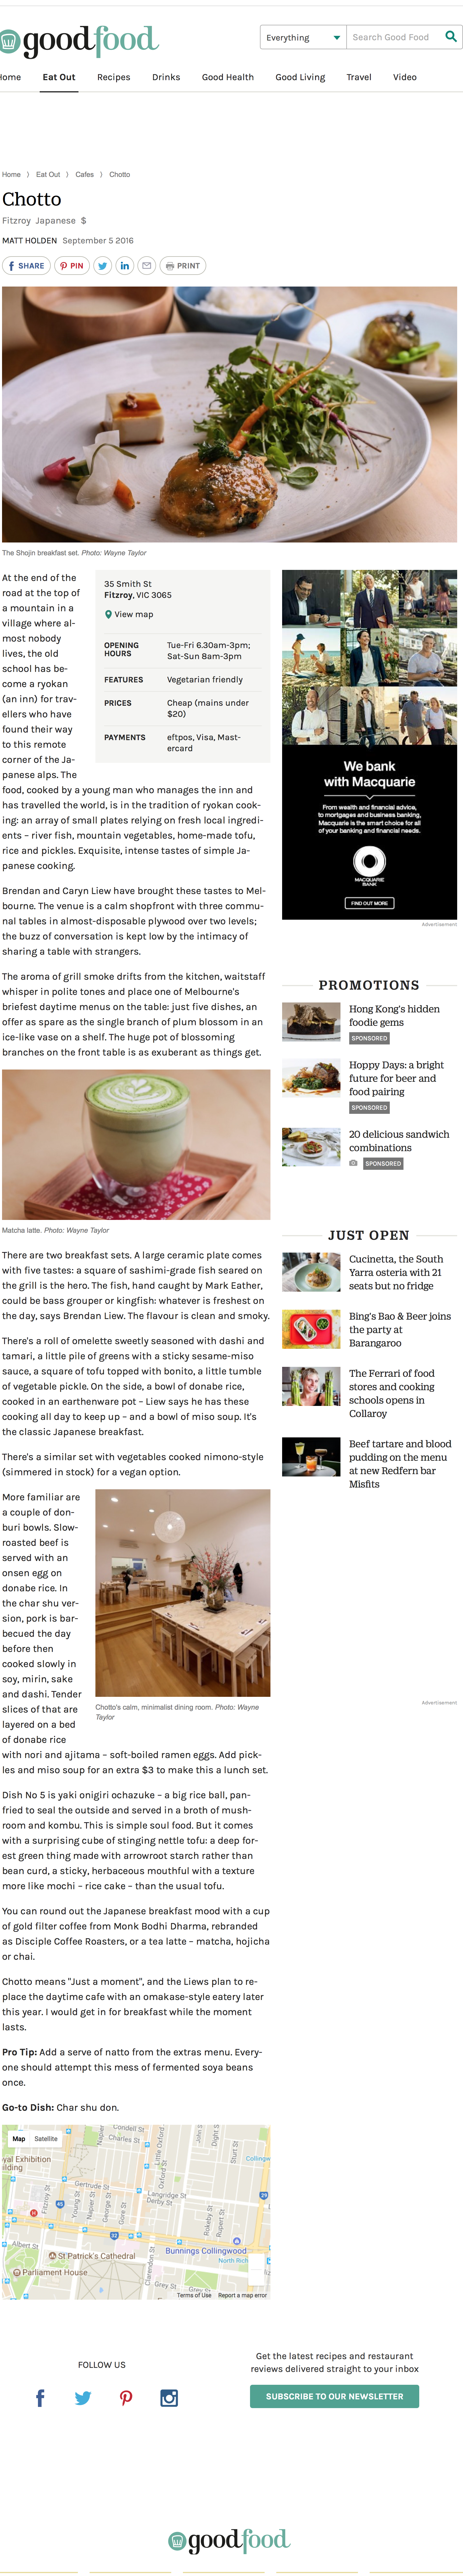 chotto review [The Age, Good Food]